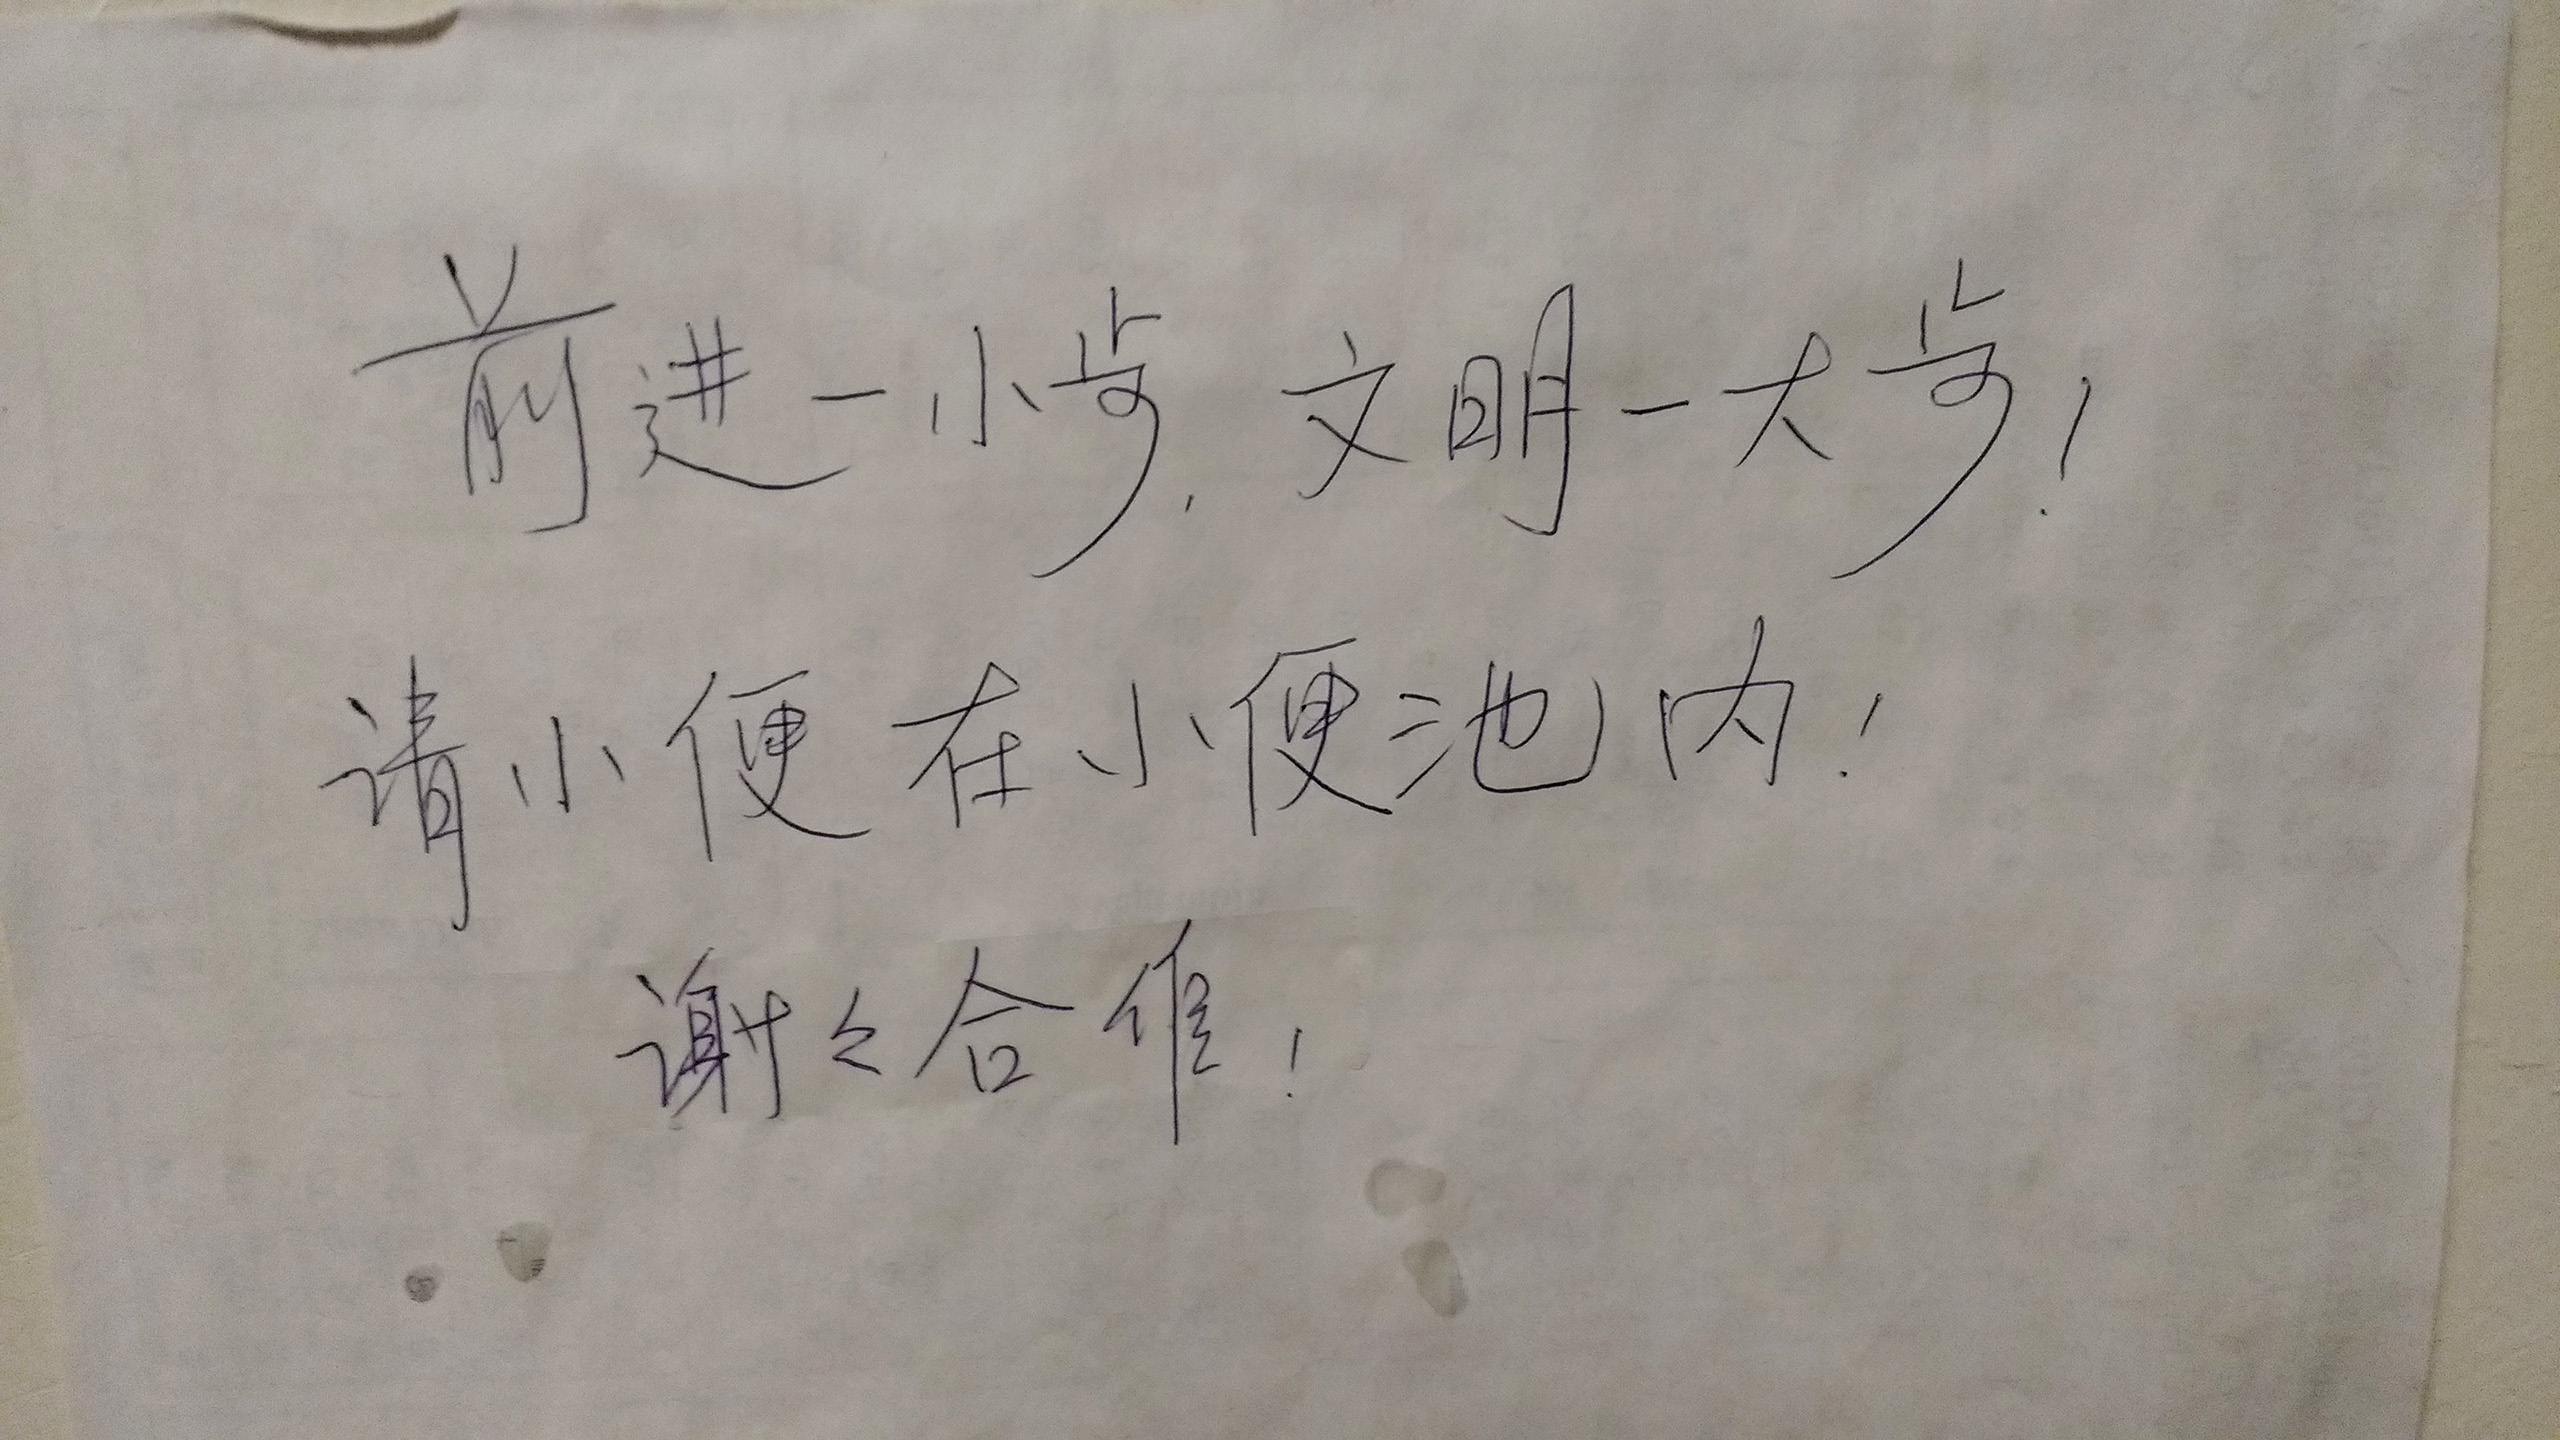 paper sign written in Chinese